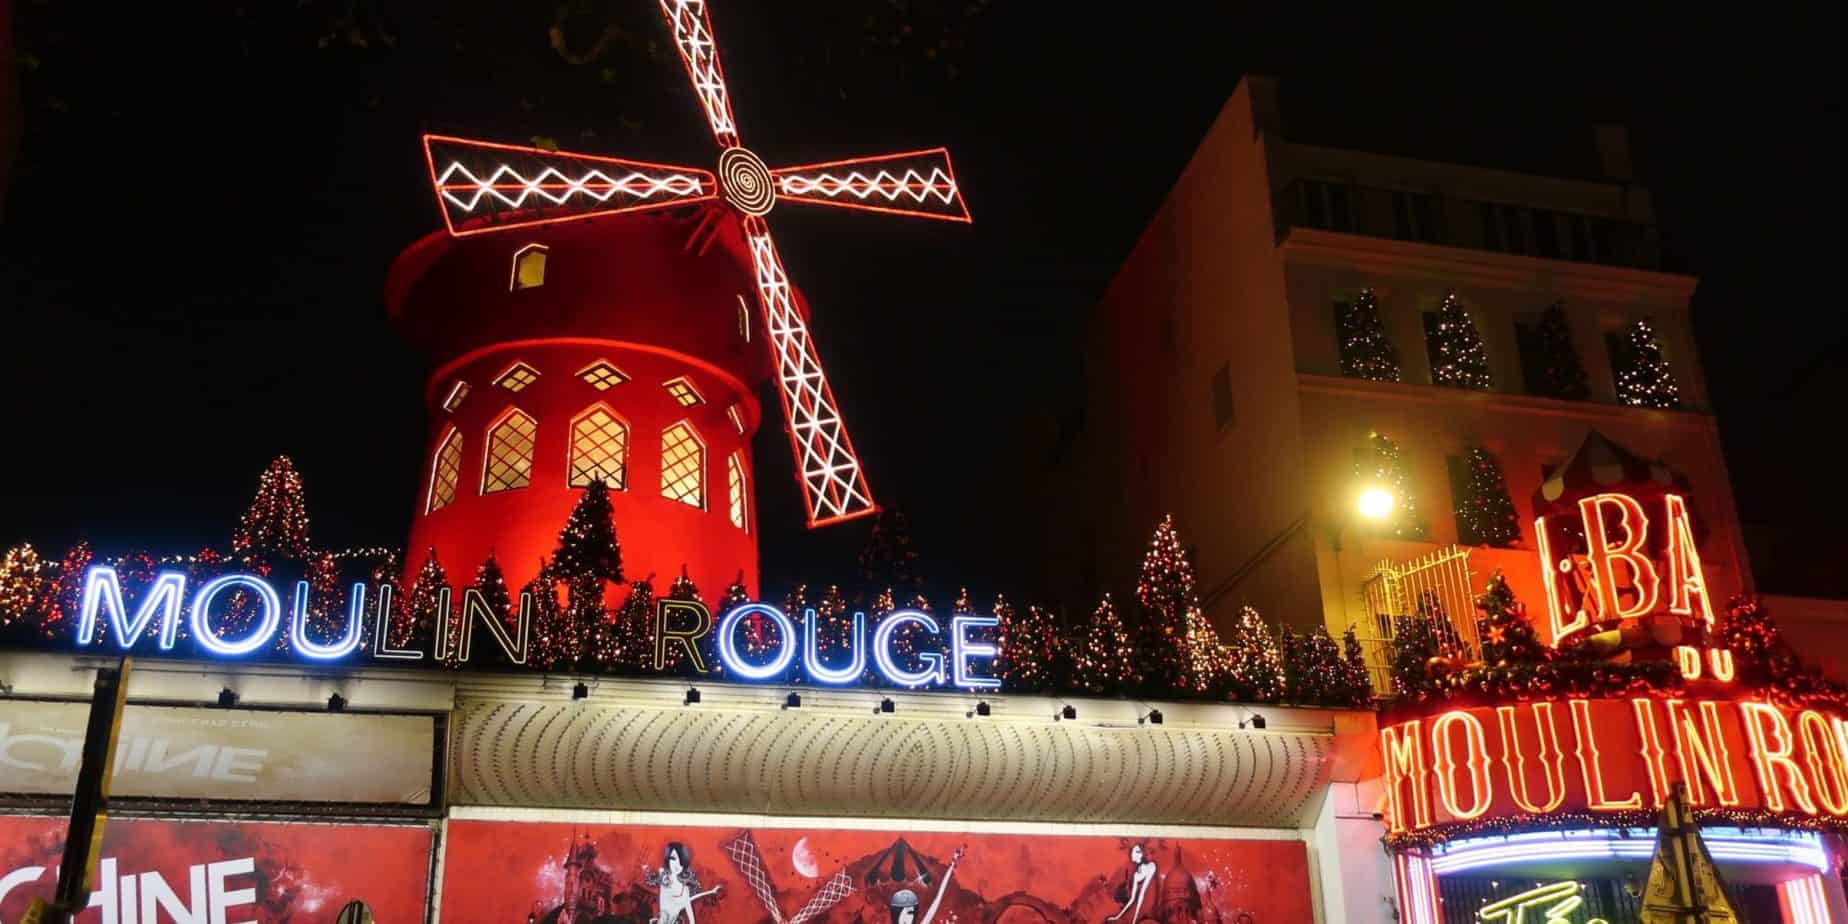 Visit Paris in January and Enjoy the Moulin Rouge